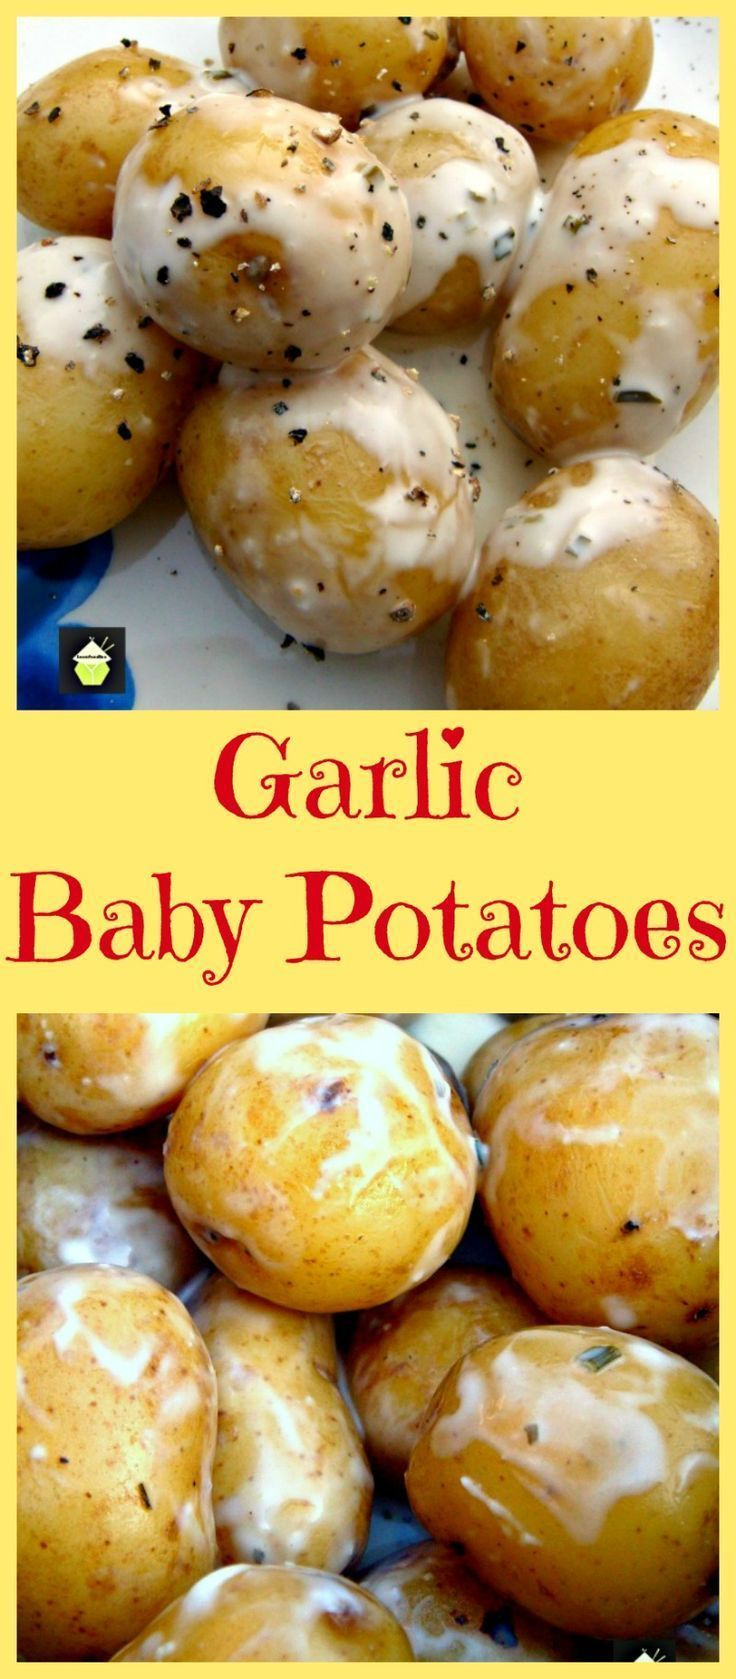 Garlic Baby Potatoes. An incredibly easy and quick recipe using tender baby potatoes, in a creamy garlic and herb coating. Delicious served warm and great for outdoor eating too!